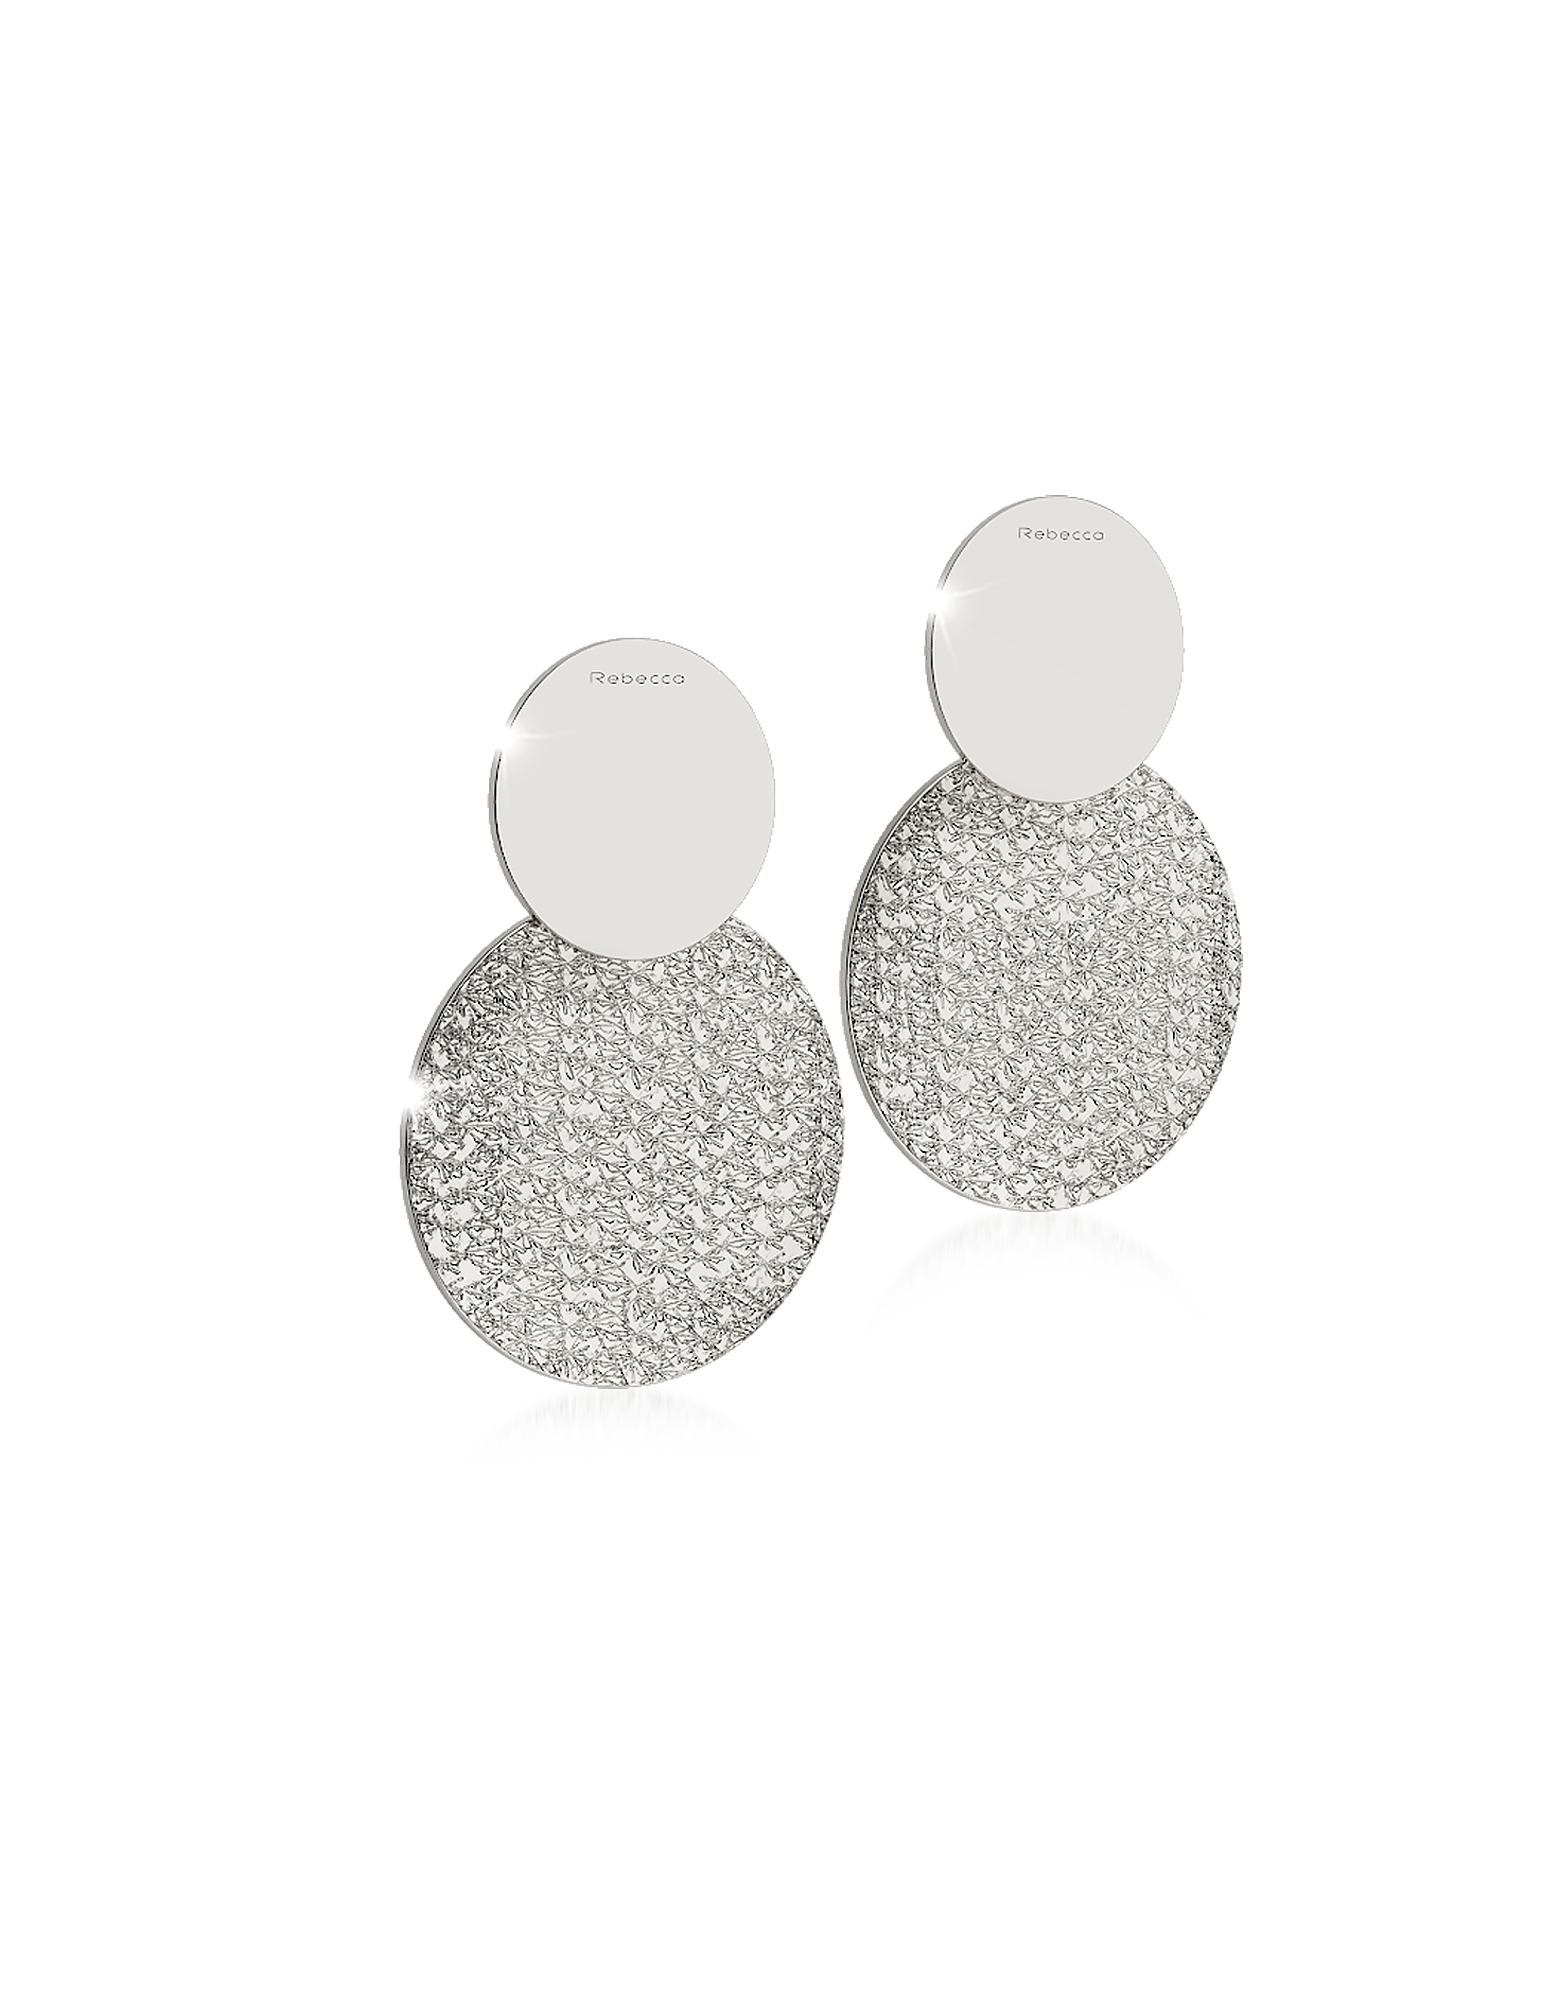 Rebecca Earrings, R-ZERO Rhodium Over Bronze Drop Earrings